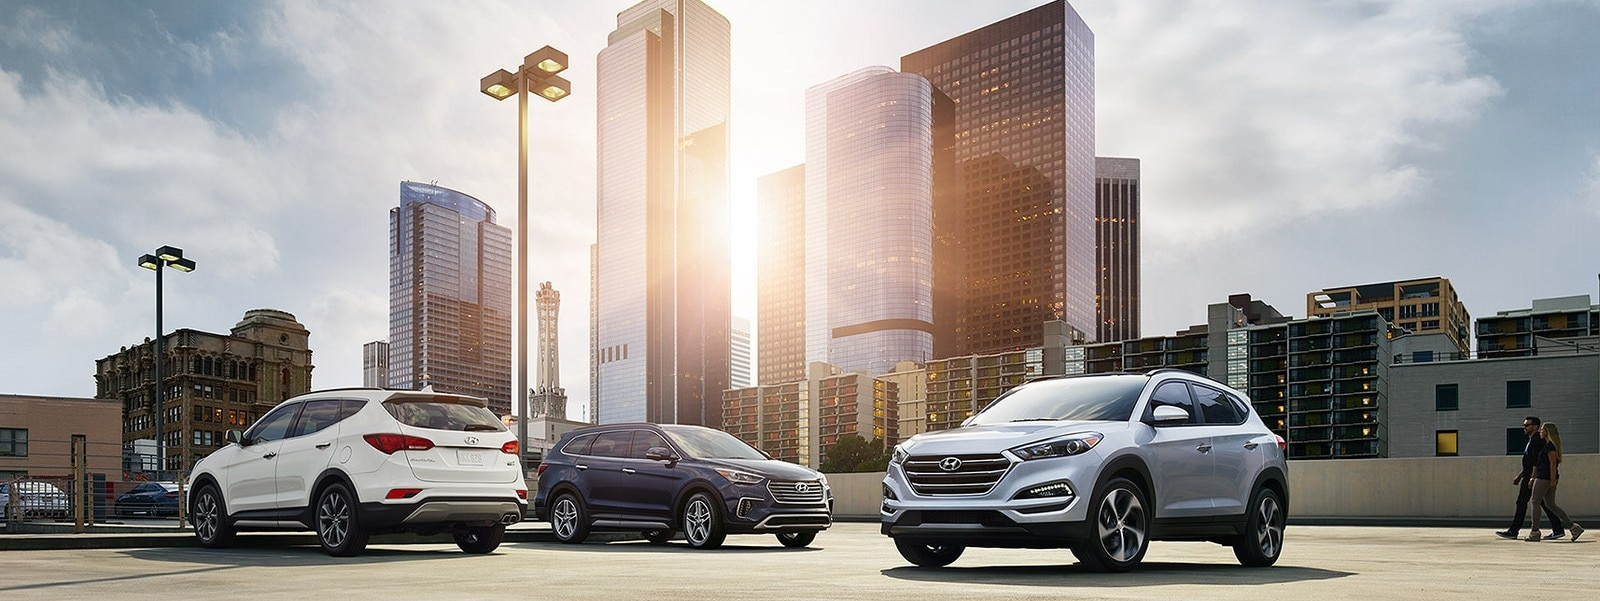 Ford Dealership Evansville >> The History of Hyundai   Evansville Hyundai   Evansville ...